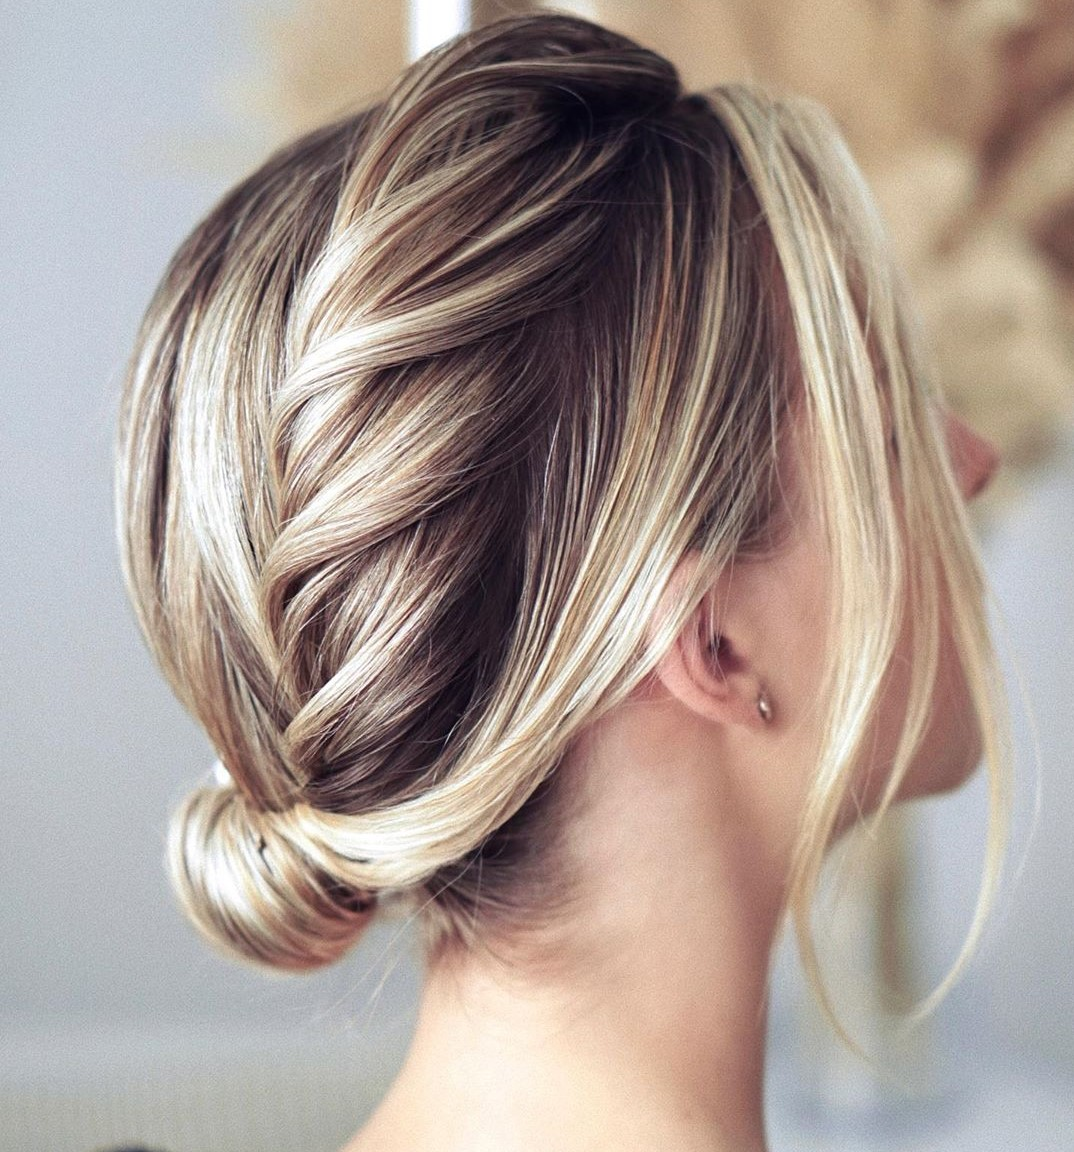 Thin Hair Updo with a Twisted Crown Braid